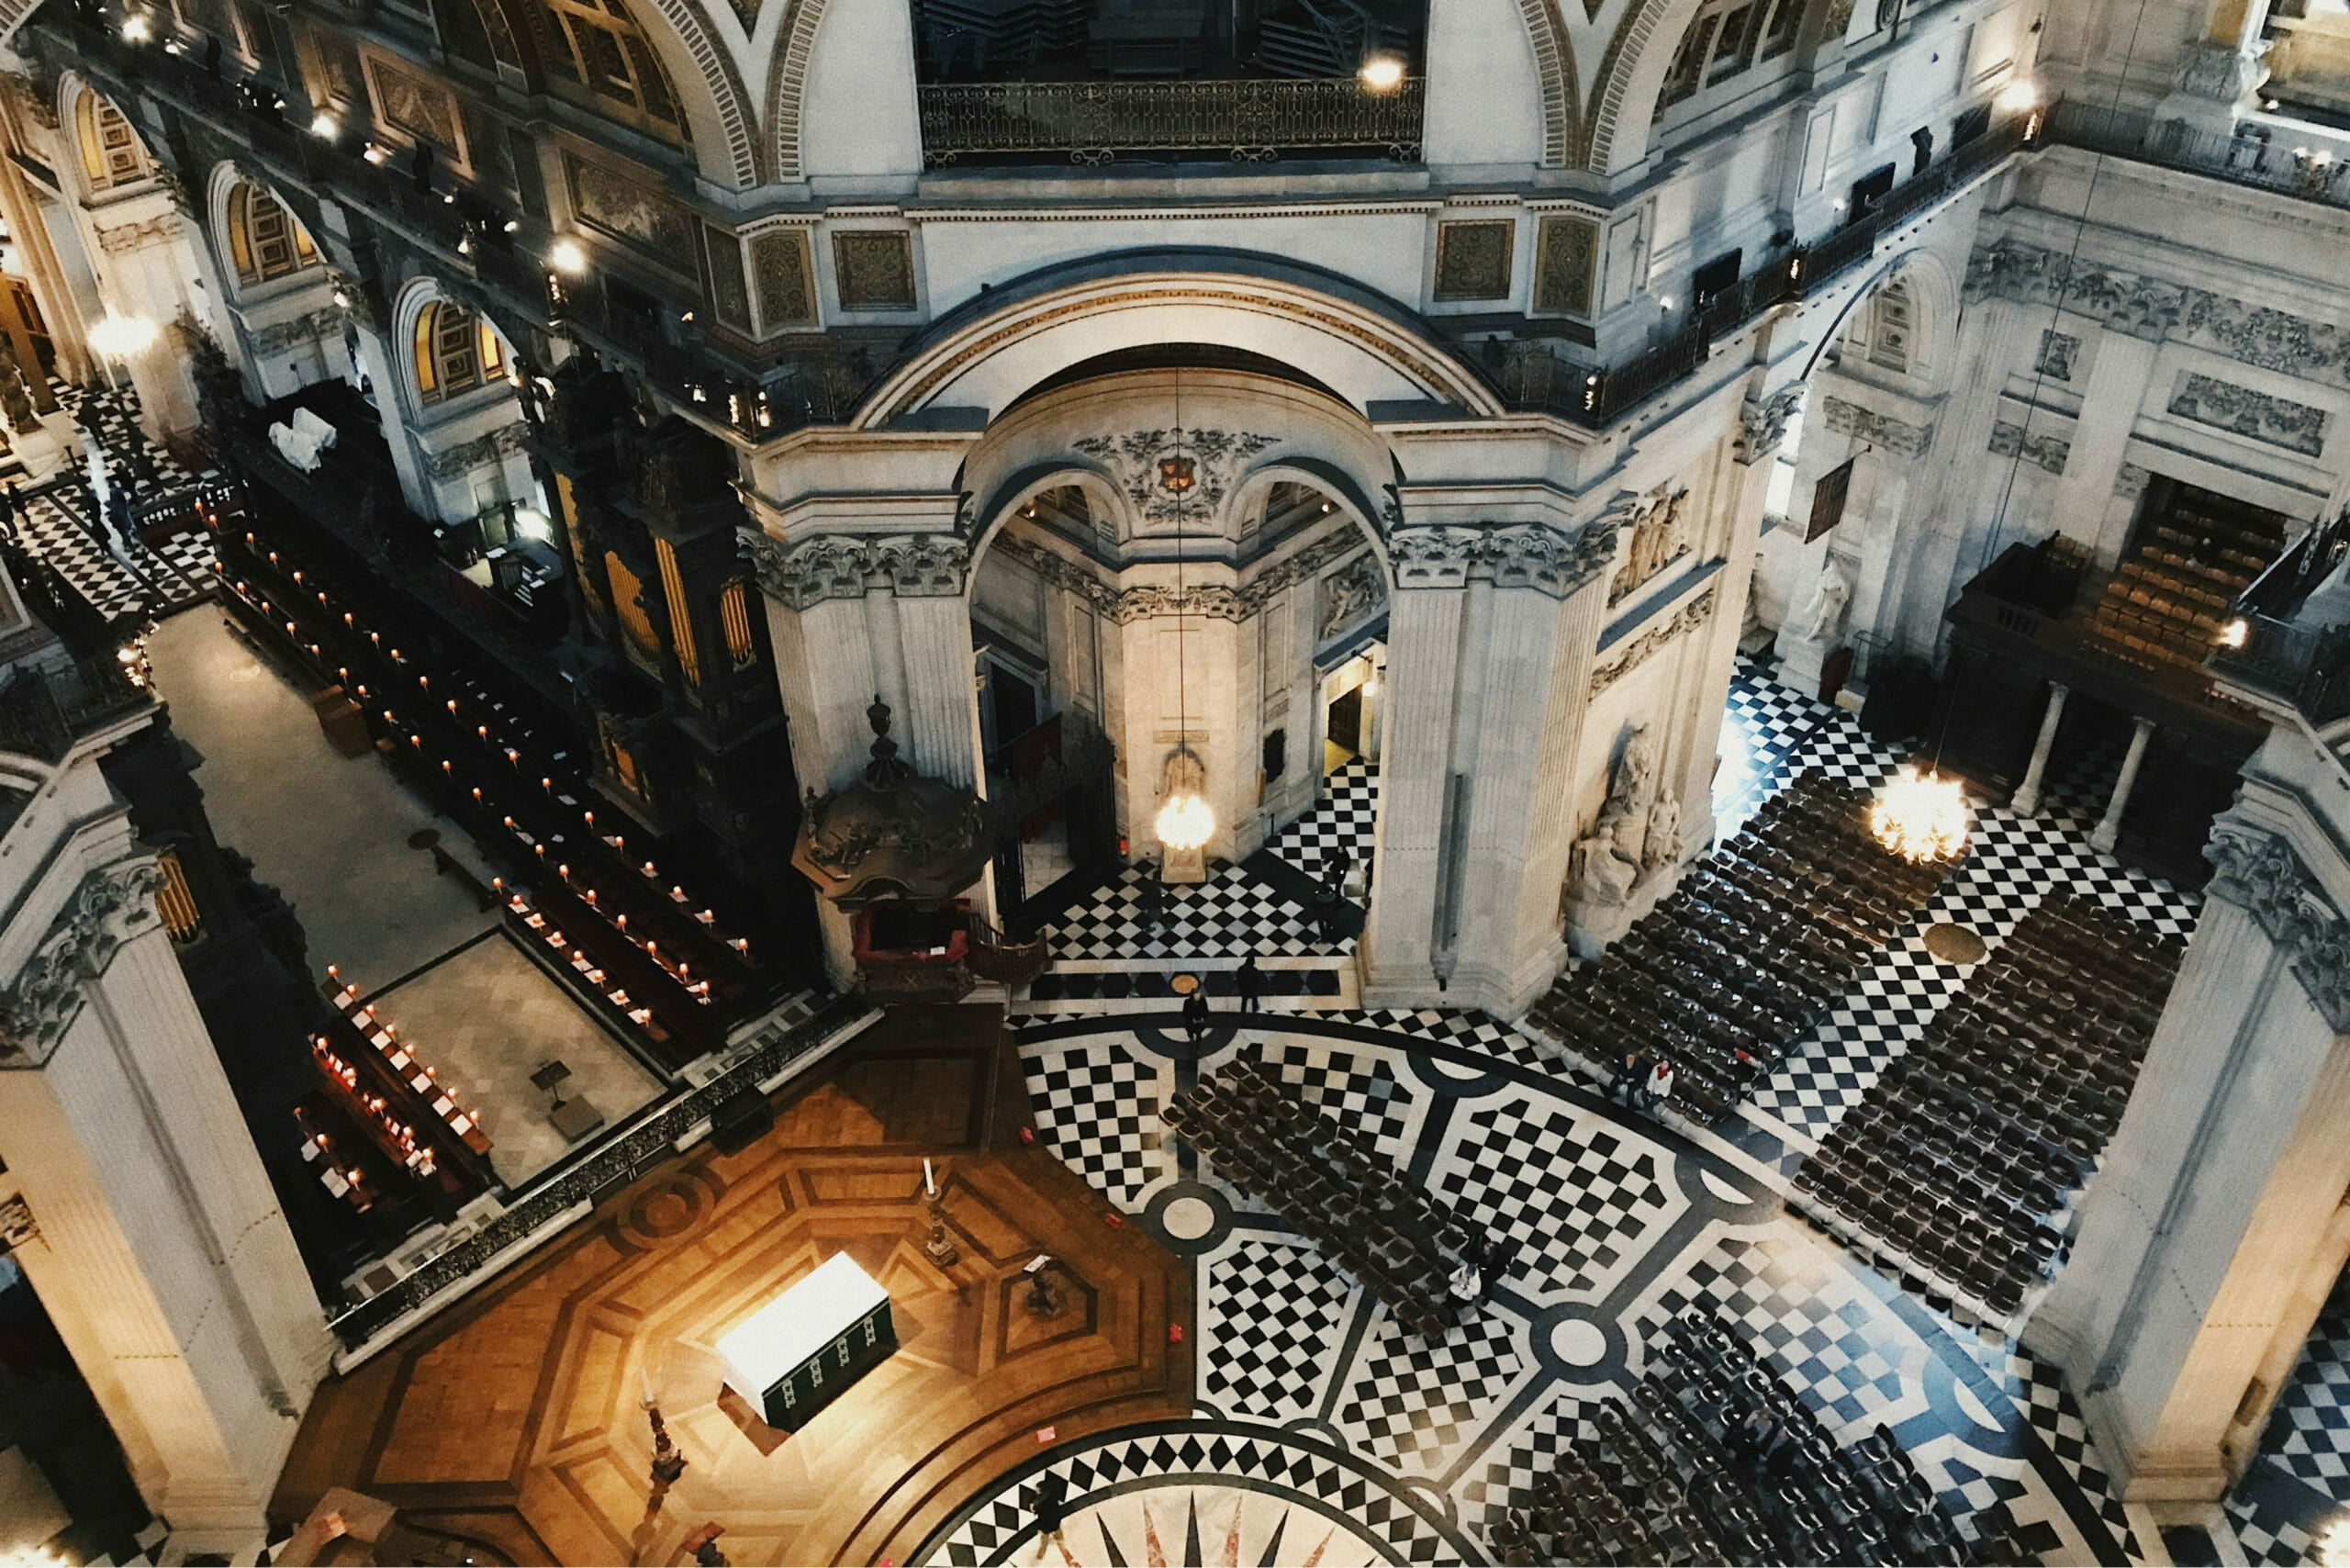 St. Paul's Cathedral Carols